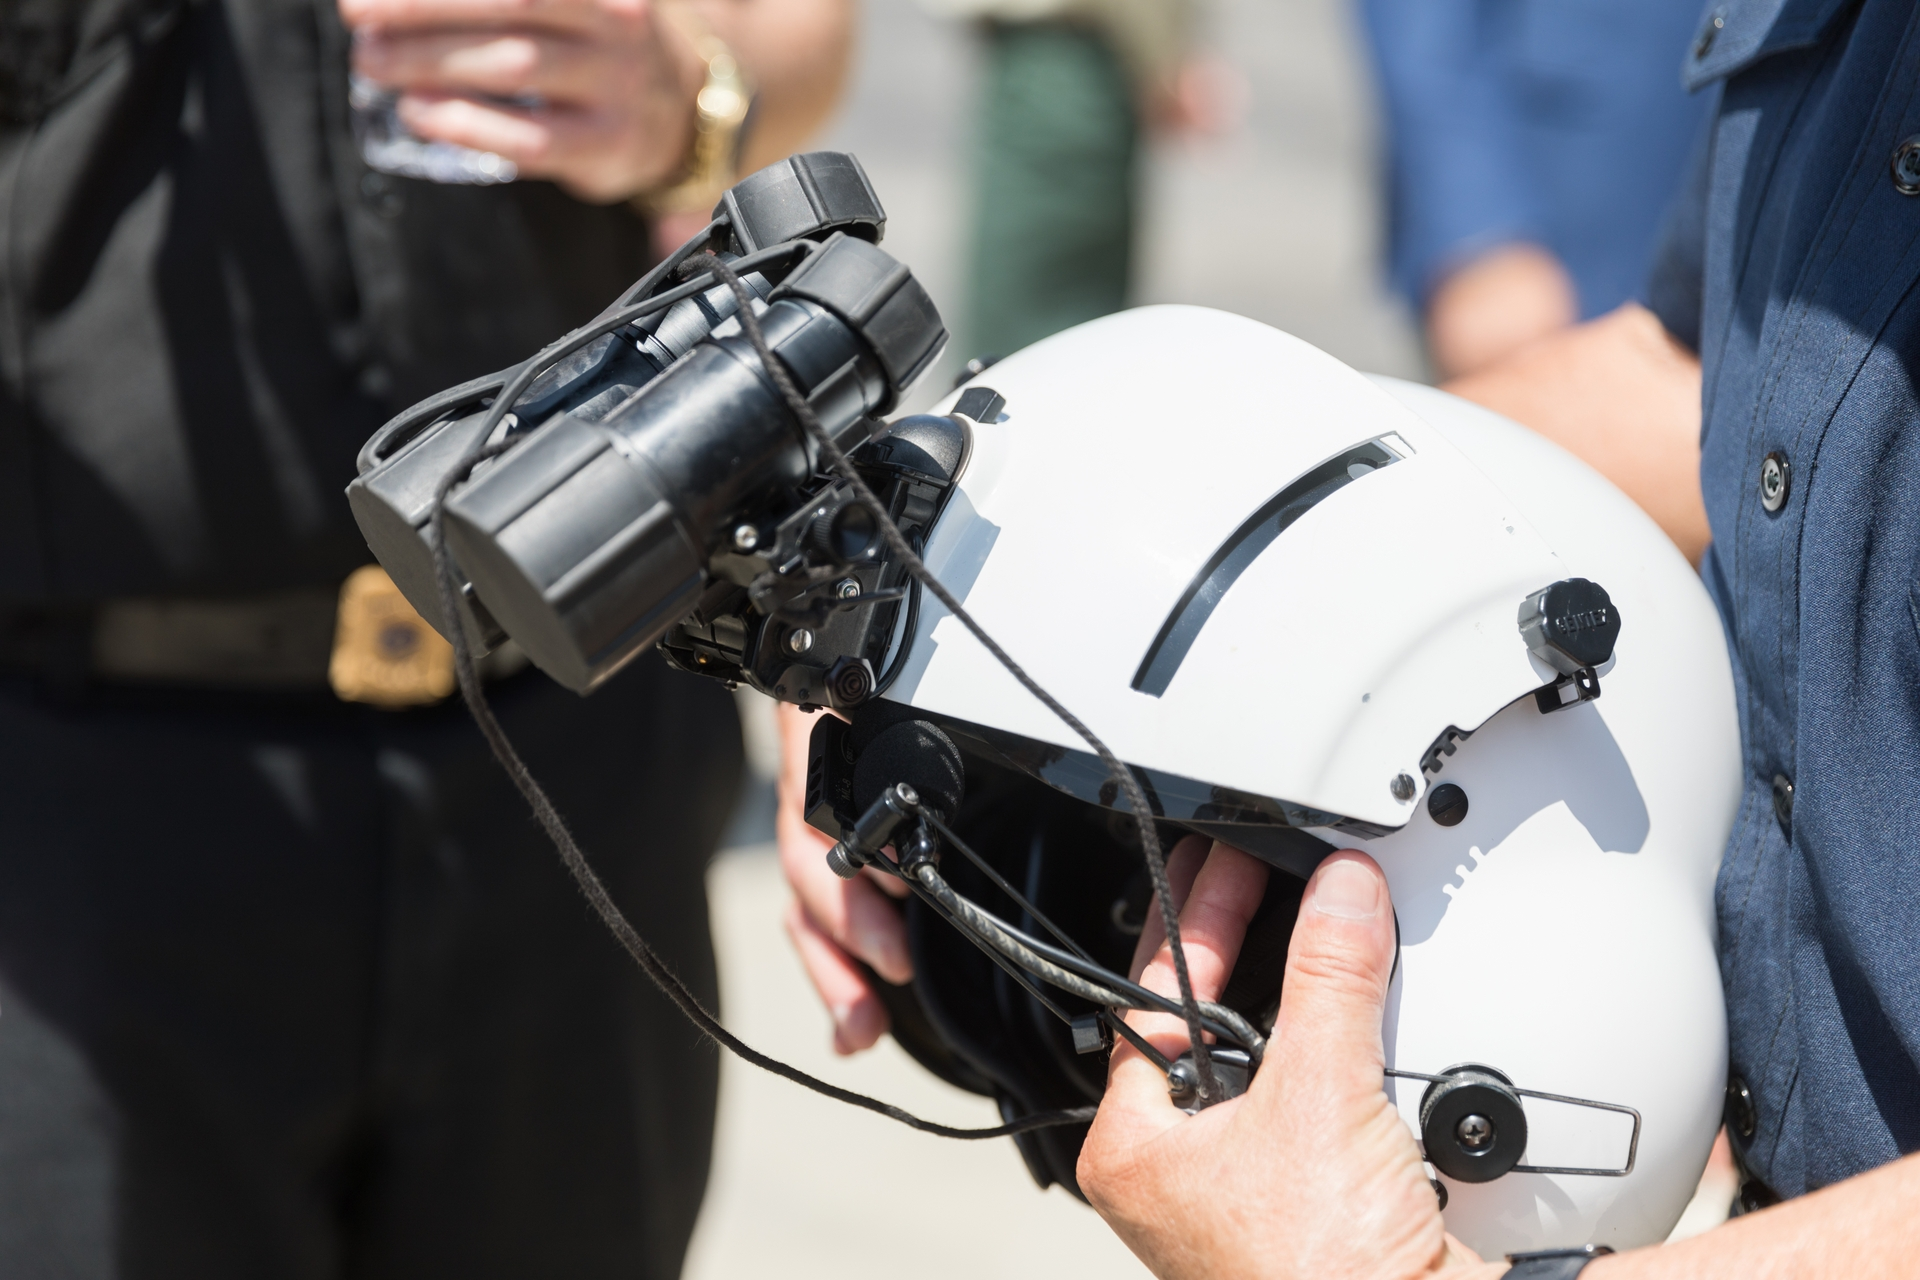 Pilots in a new water-dropping helicopter will use helmets like these equipped with night-vision goggles to fly after sundown.